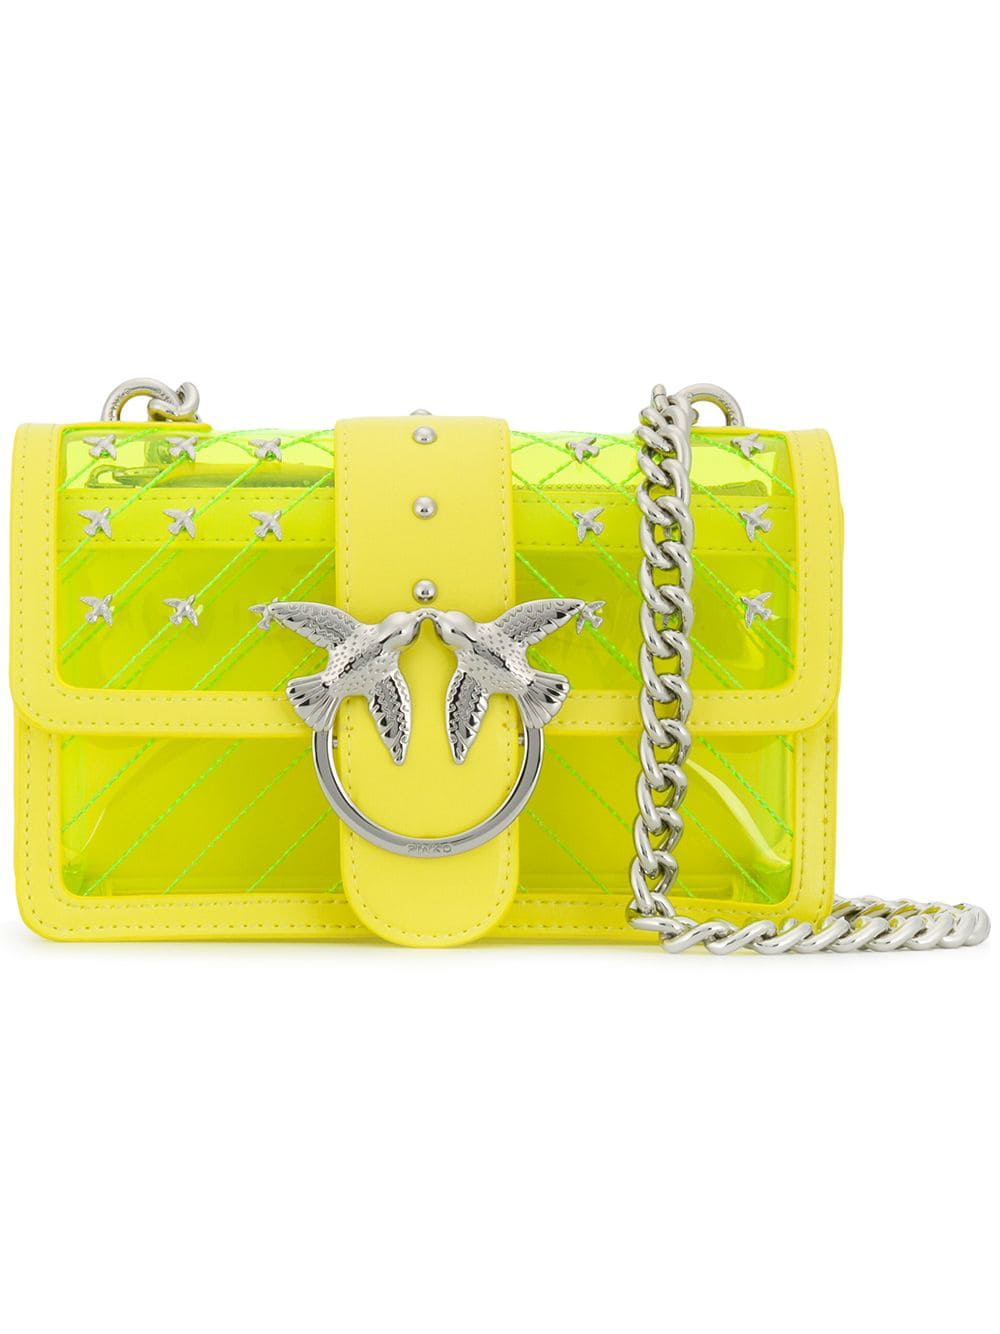 5418696996d Pinko Love Quilted Shoulder Bag - Yellow | ModeSens